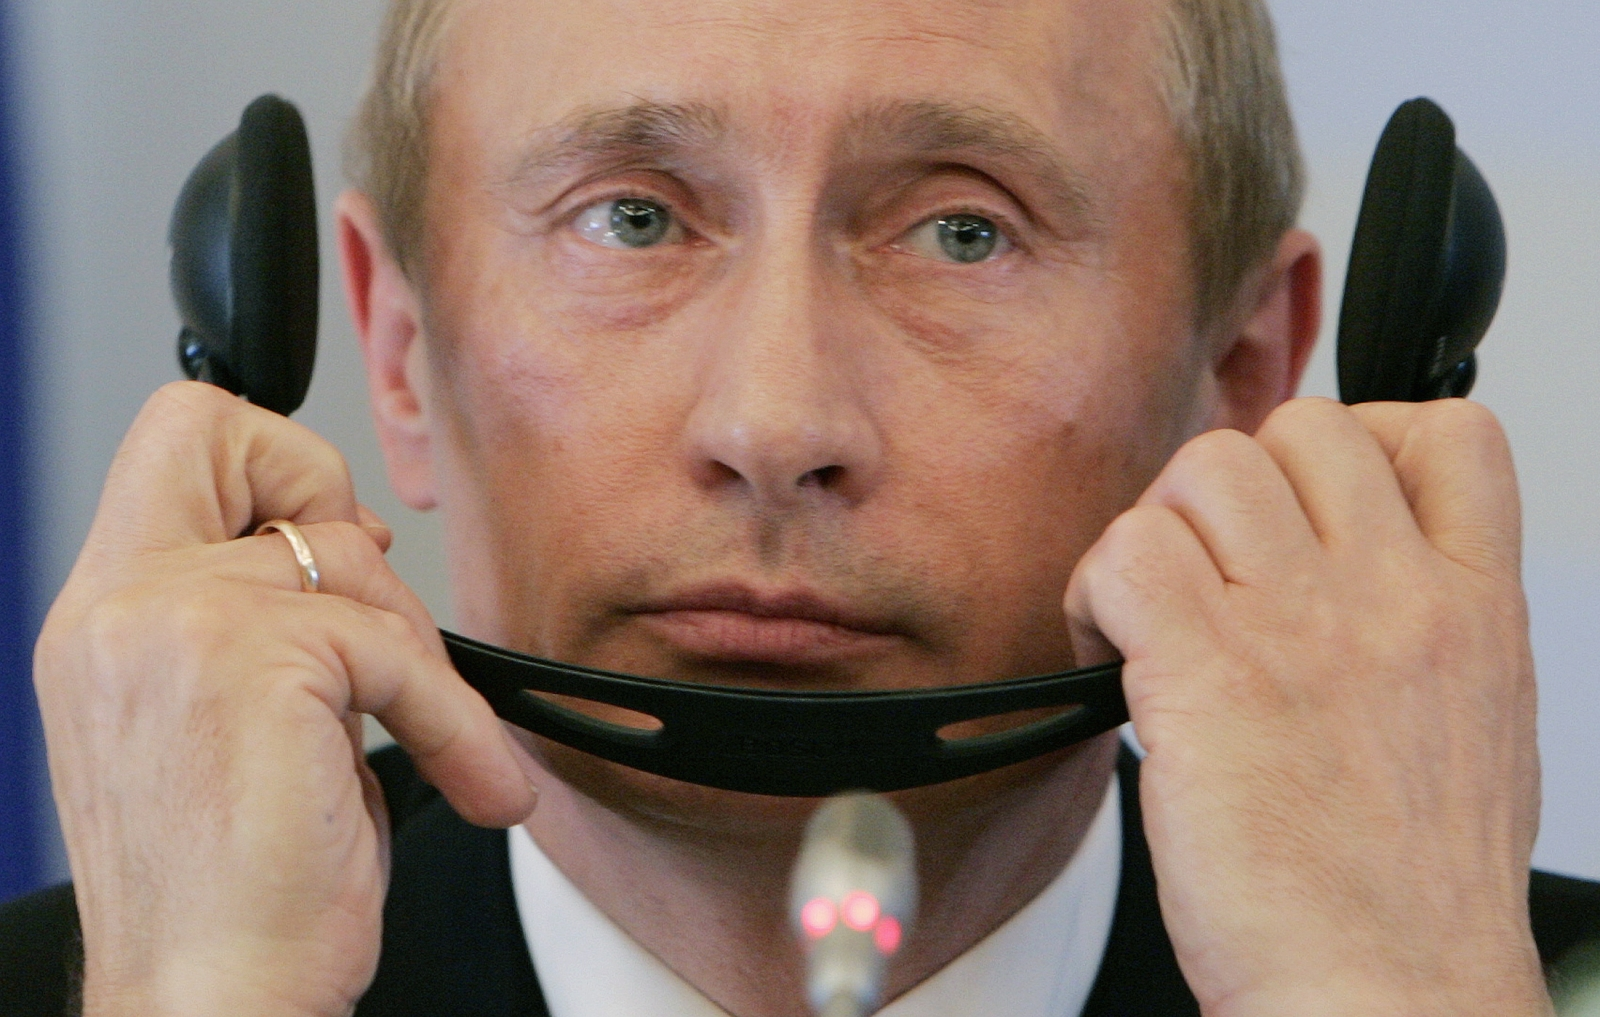 Putin Could Pull Plug on Russia's Internet During War or Protests